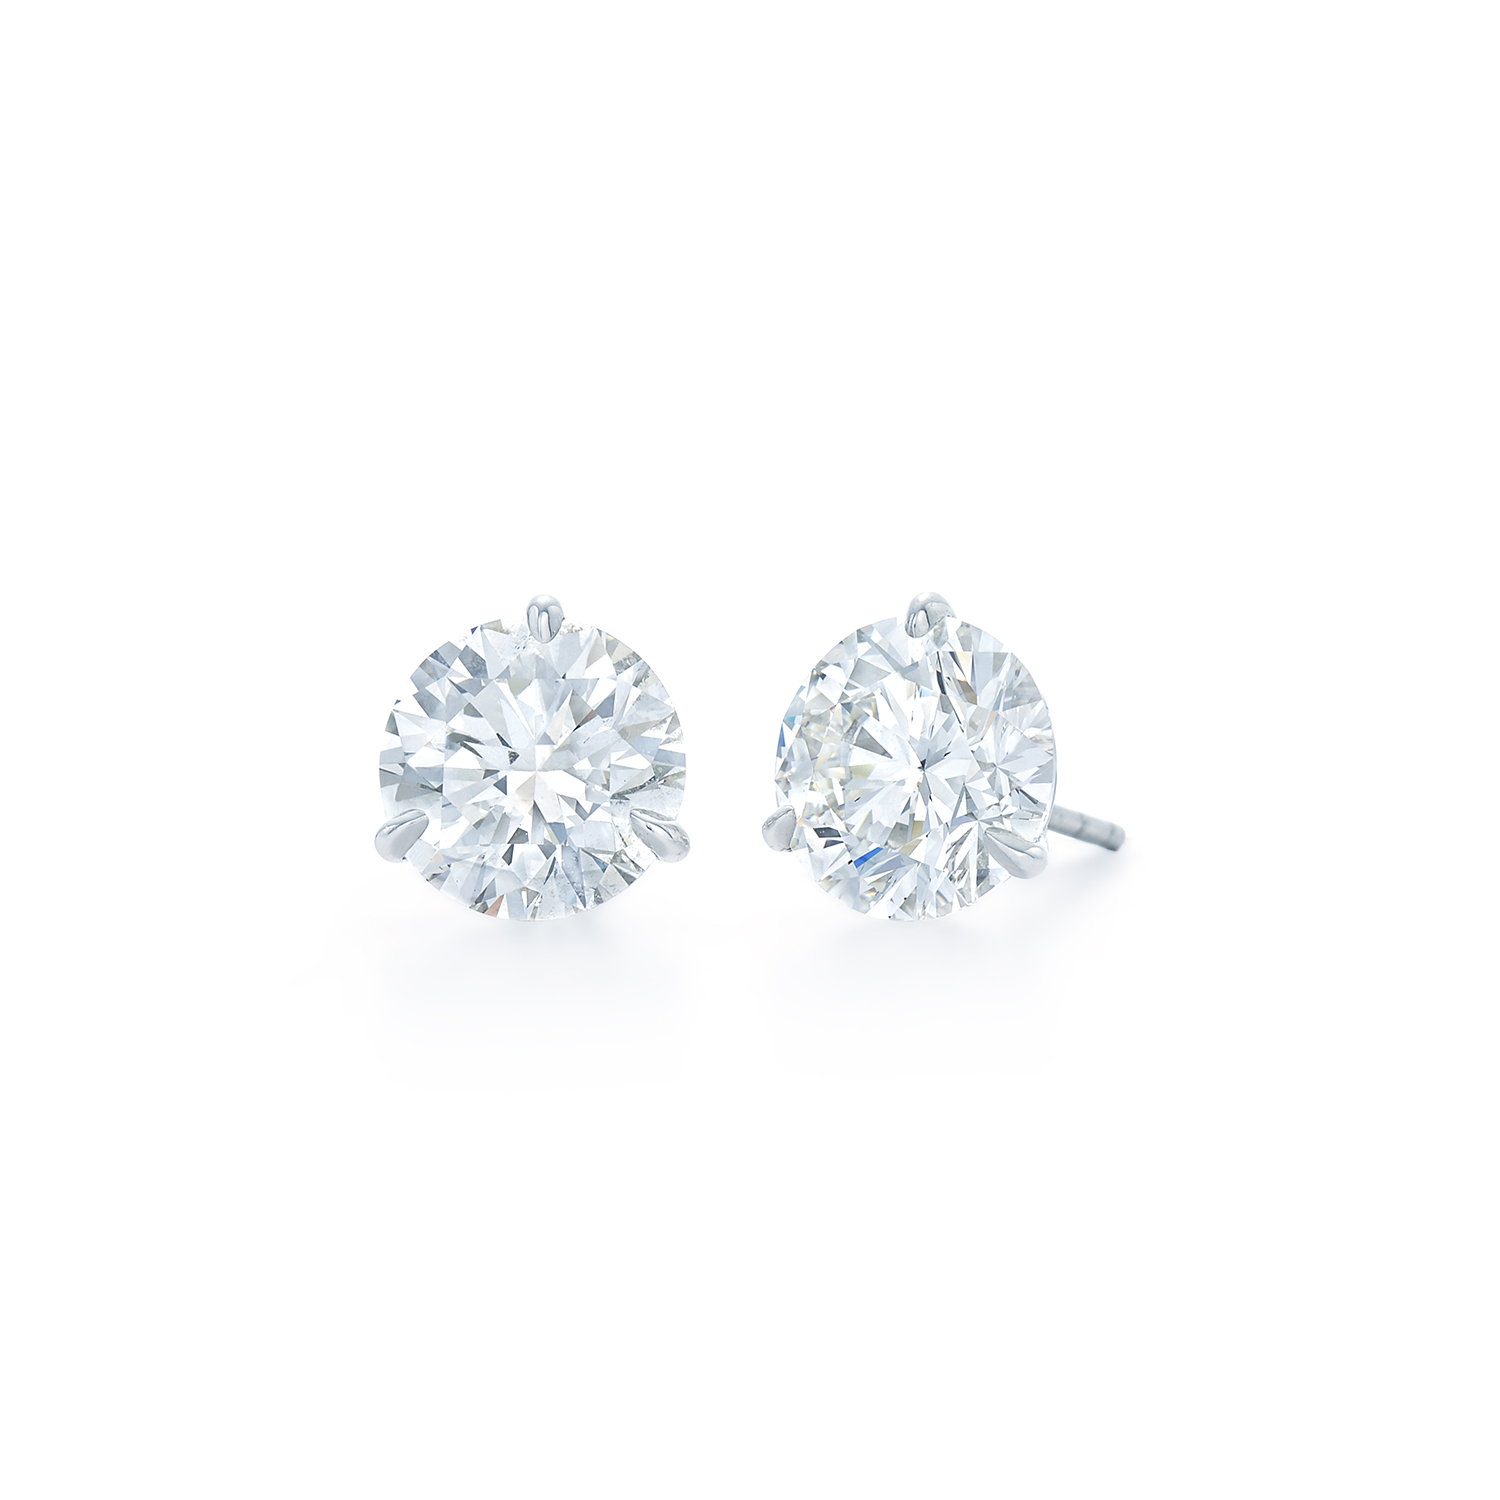 Kwiat Diamond Studs 5 02 Cts J Color Vs2 Si1 Clarity